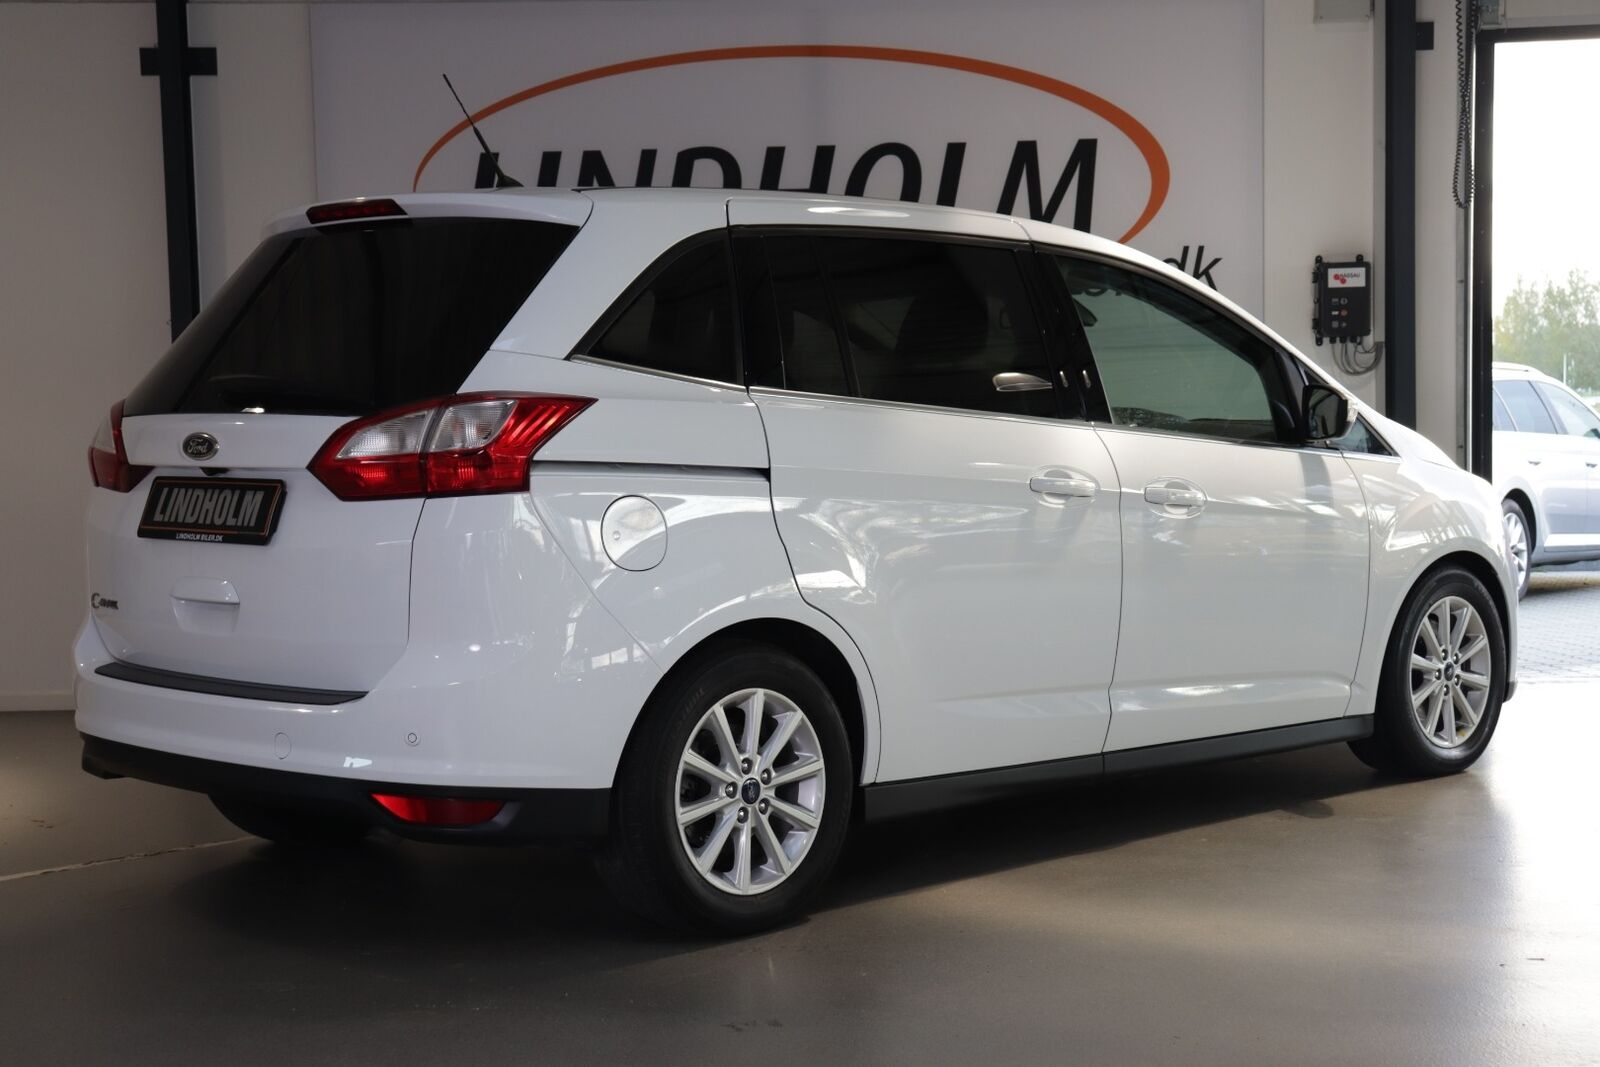 Ford Grand C-MAX TDCi 150 Titanium